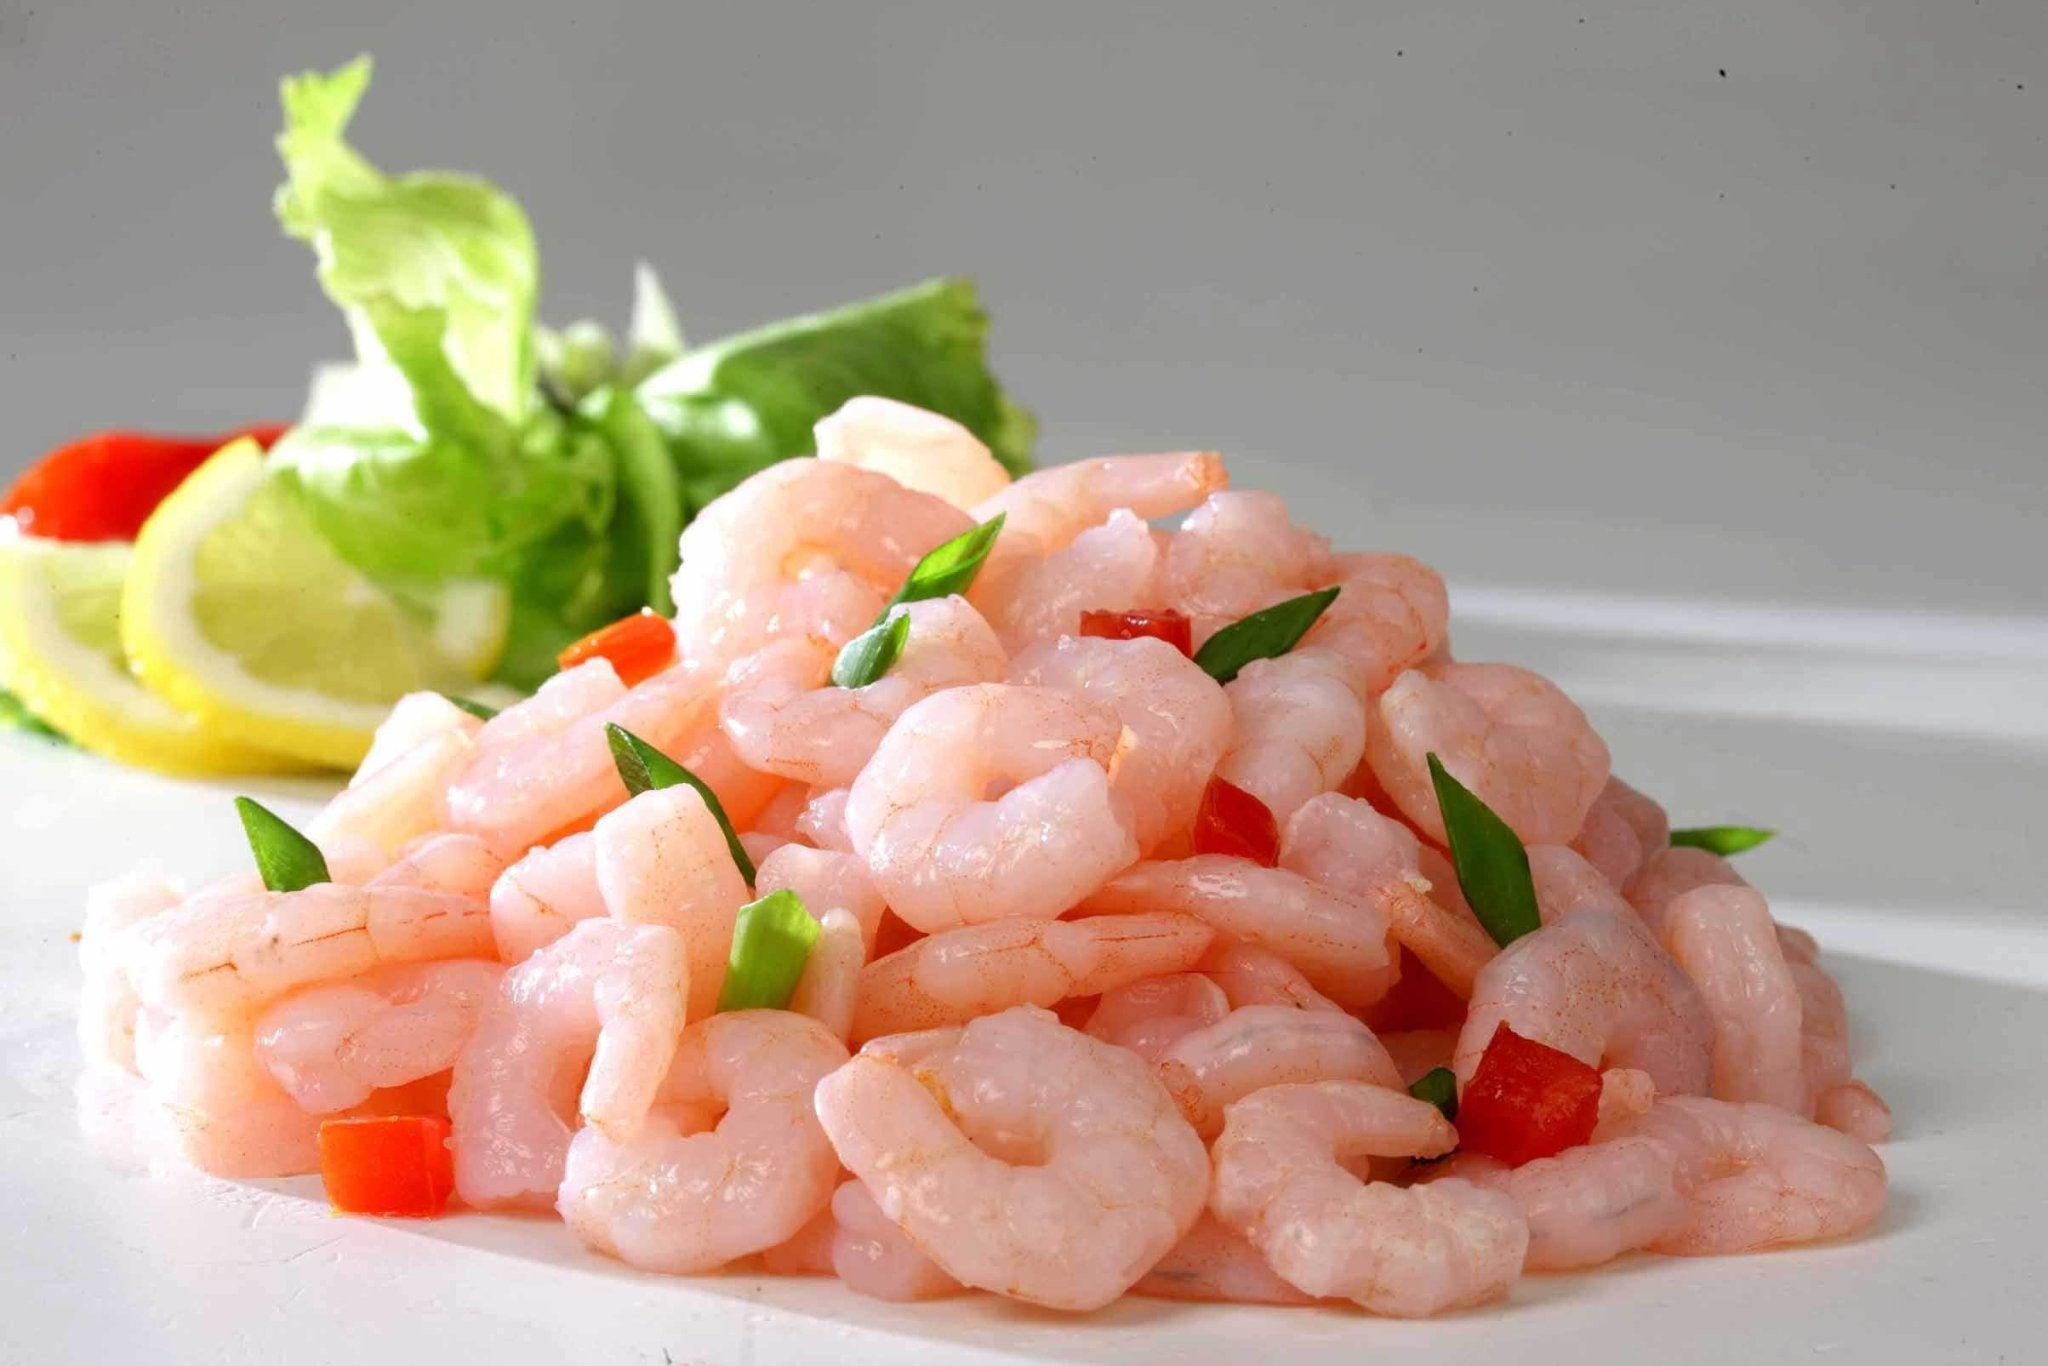 Cooked & Peeled Atlantic Prawns - S&J Fisheries